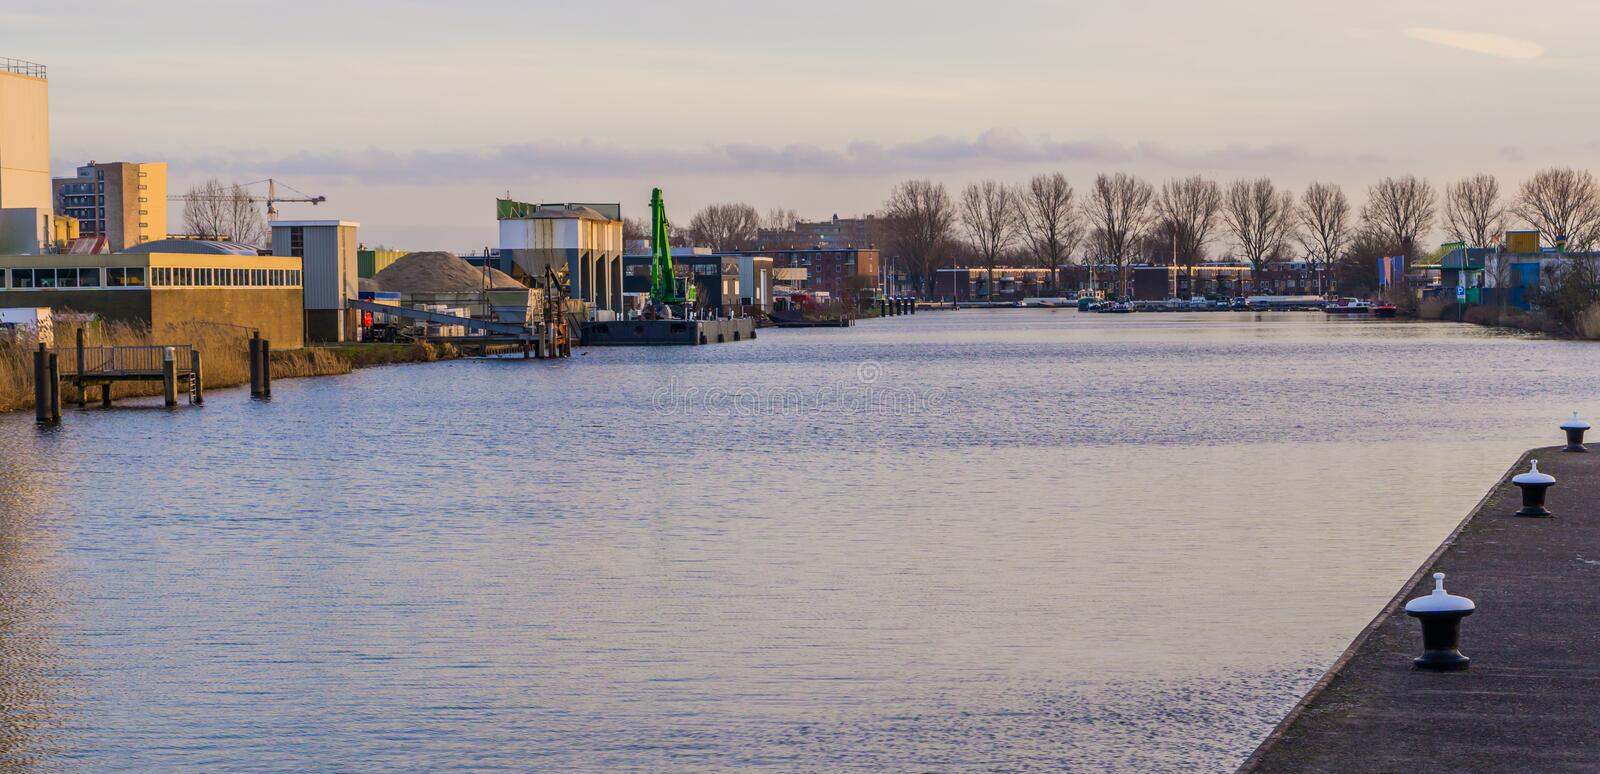 Industrial zone at the water side of Alphen aan den Rijn, The Netherlands, city scenery of a well known dutch city. A Industrial zone at the water side of Alphen stock image